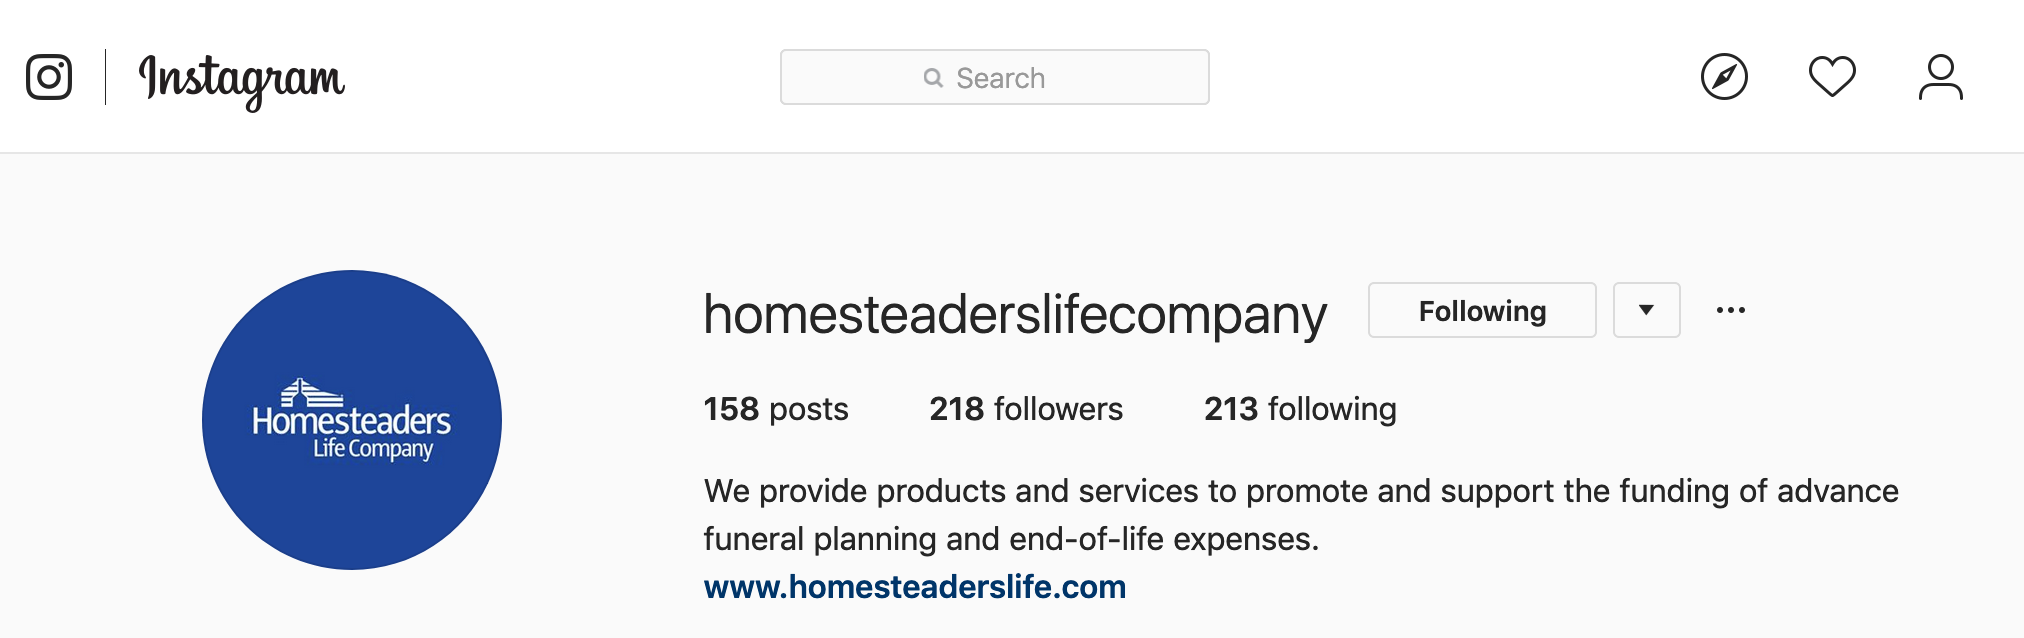 Homesteaders Instagram profile screen shot